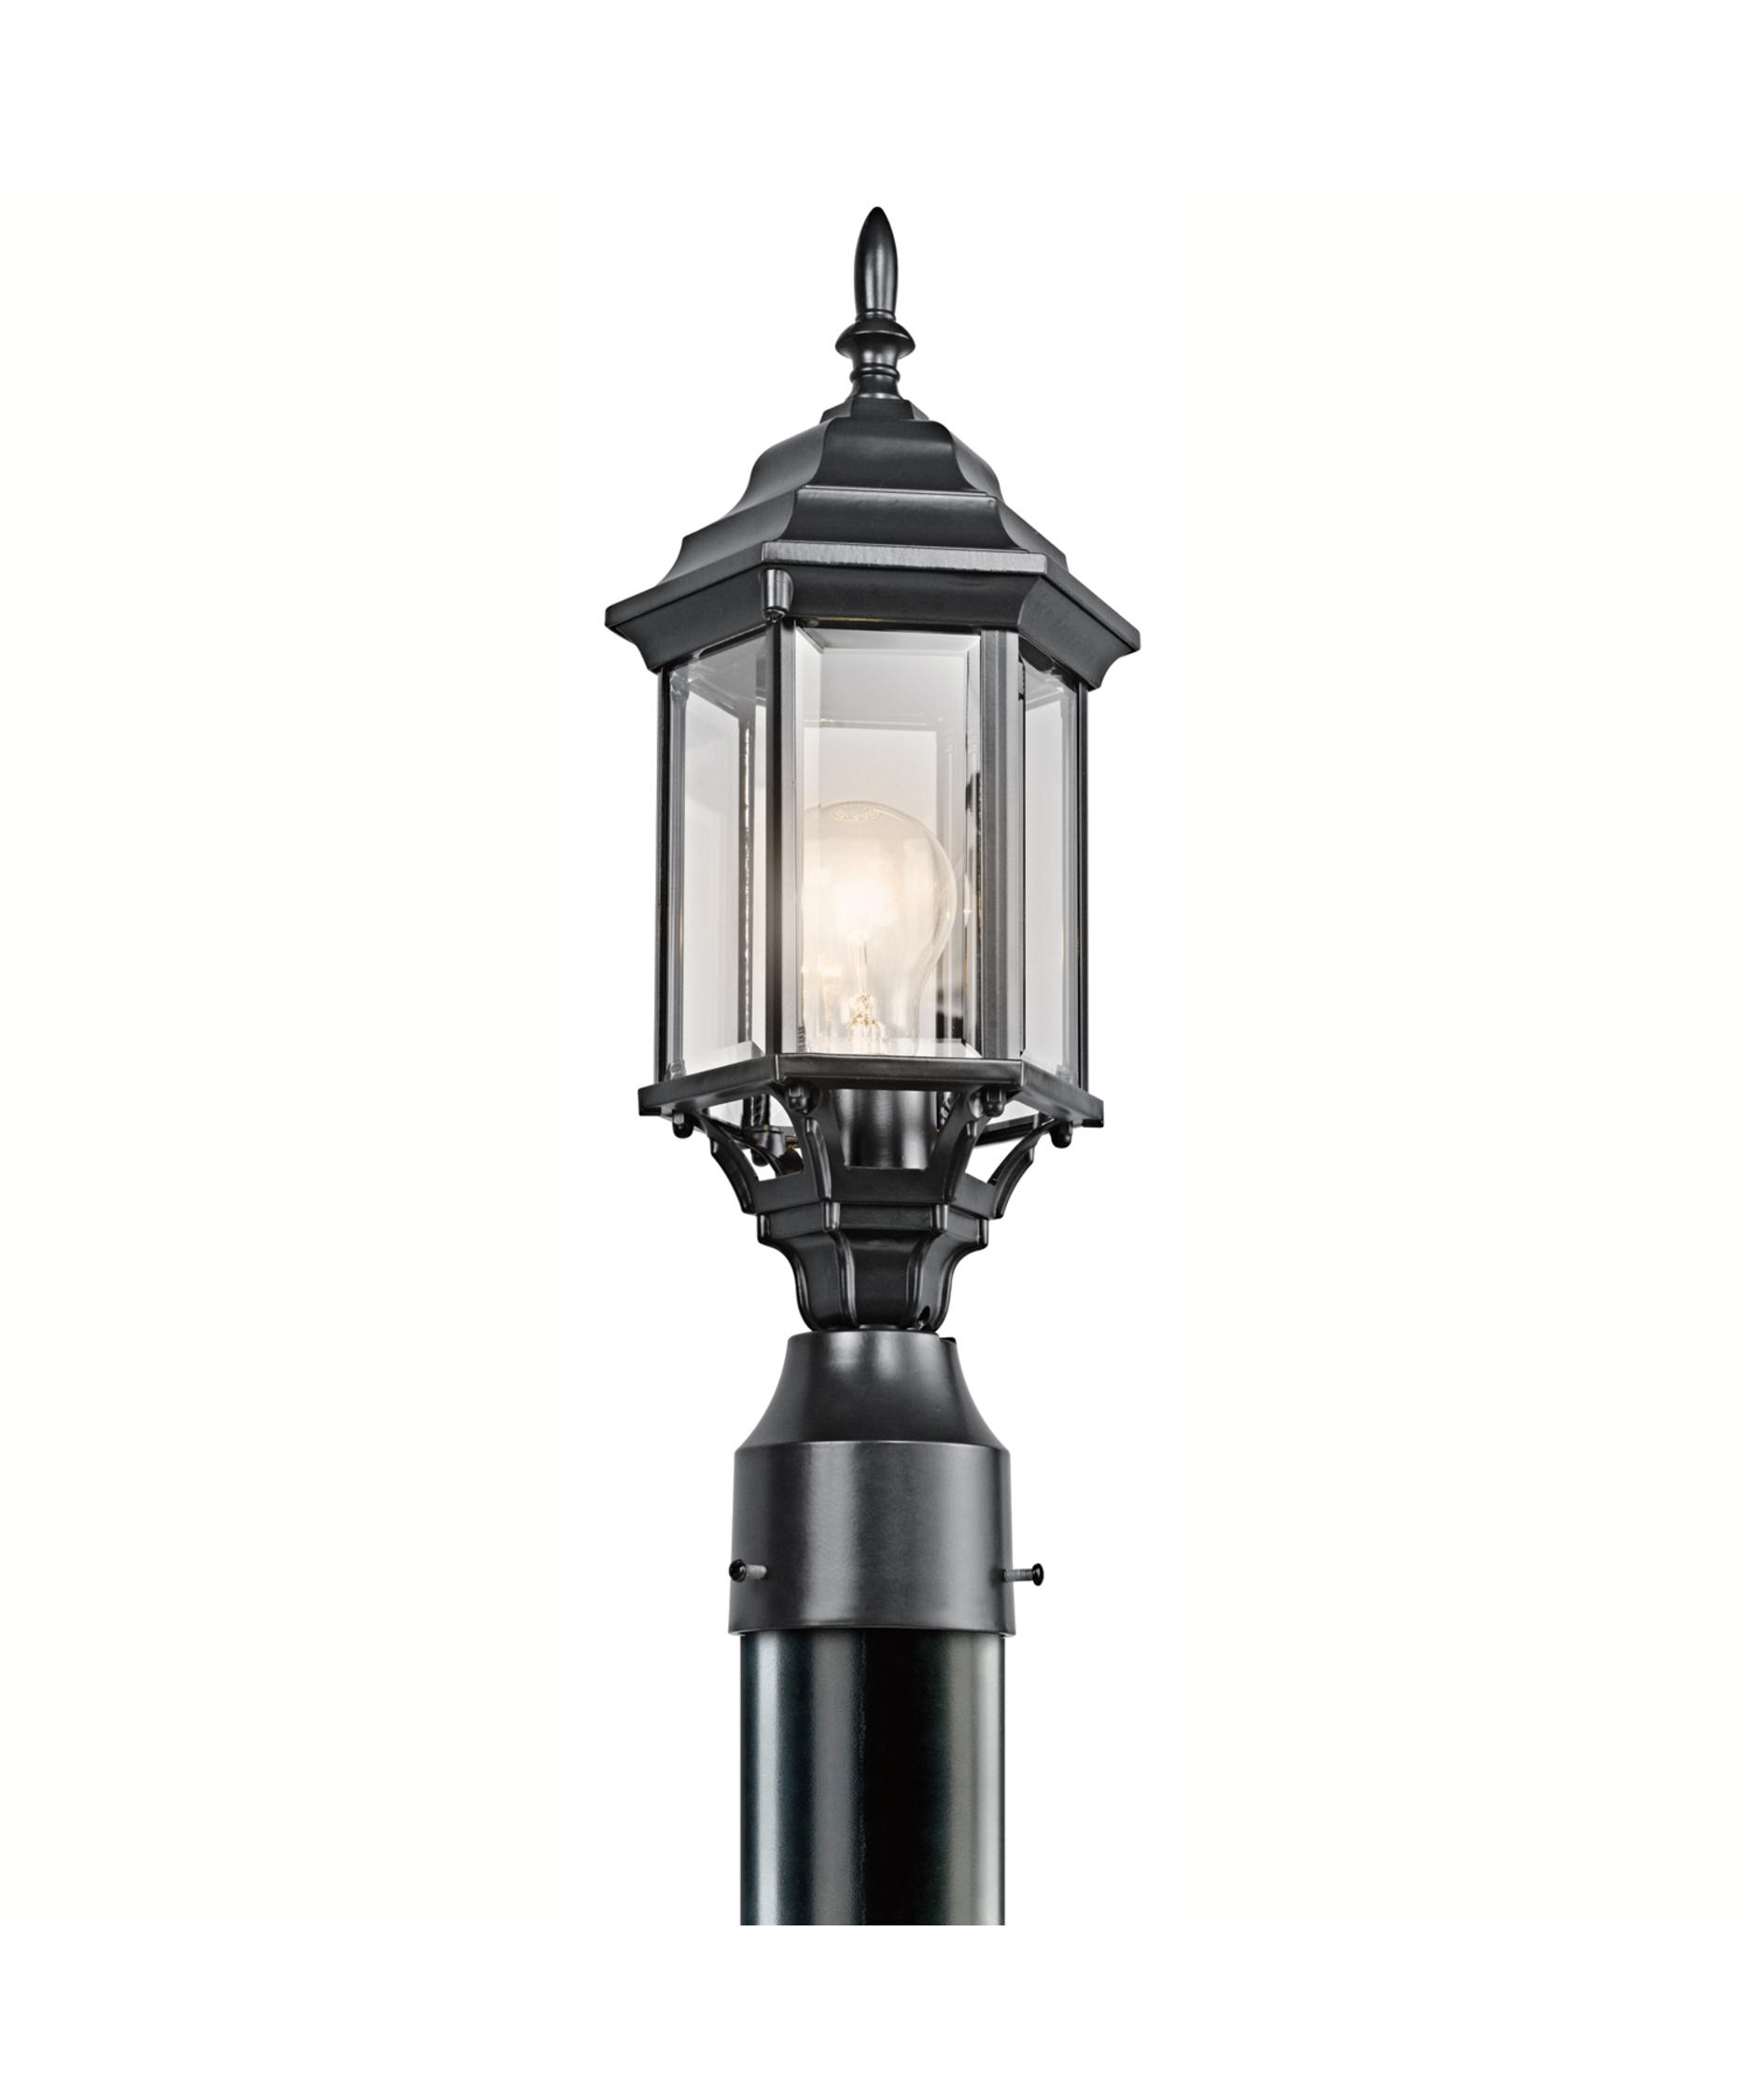 Kichler 49256 Chesapeake 1 Light Outdoor Post Lamp